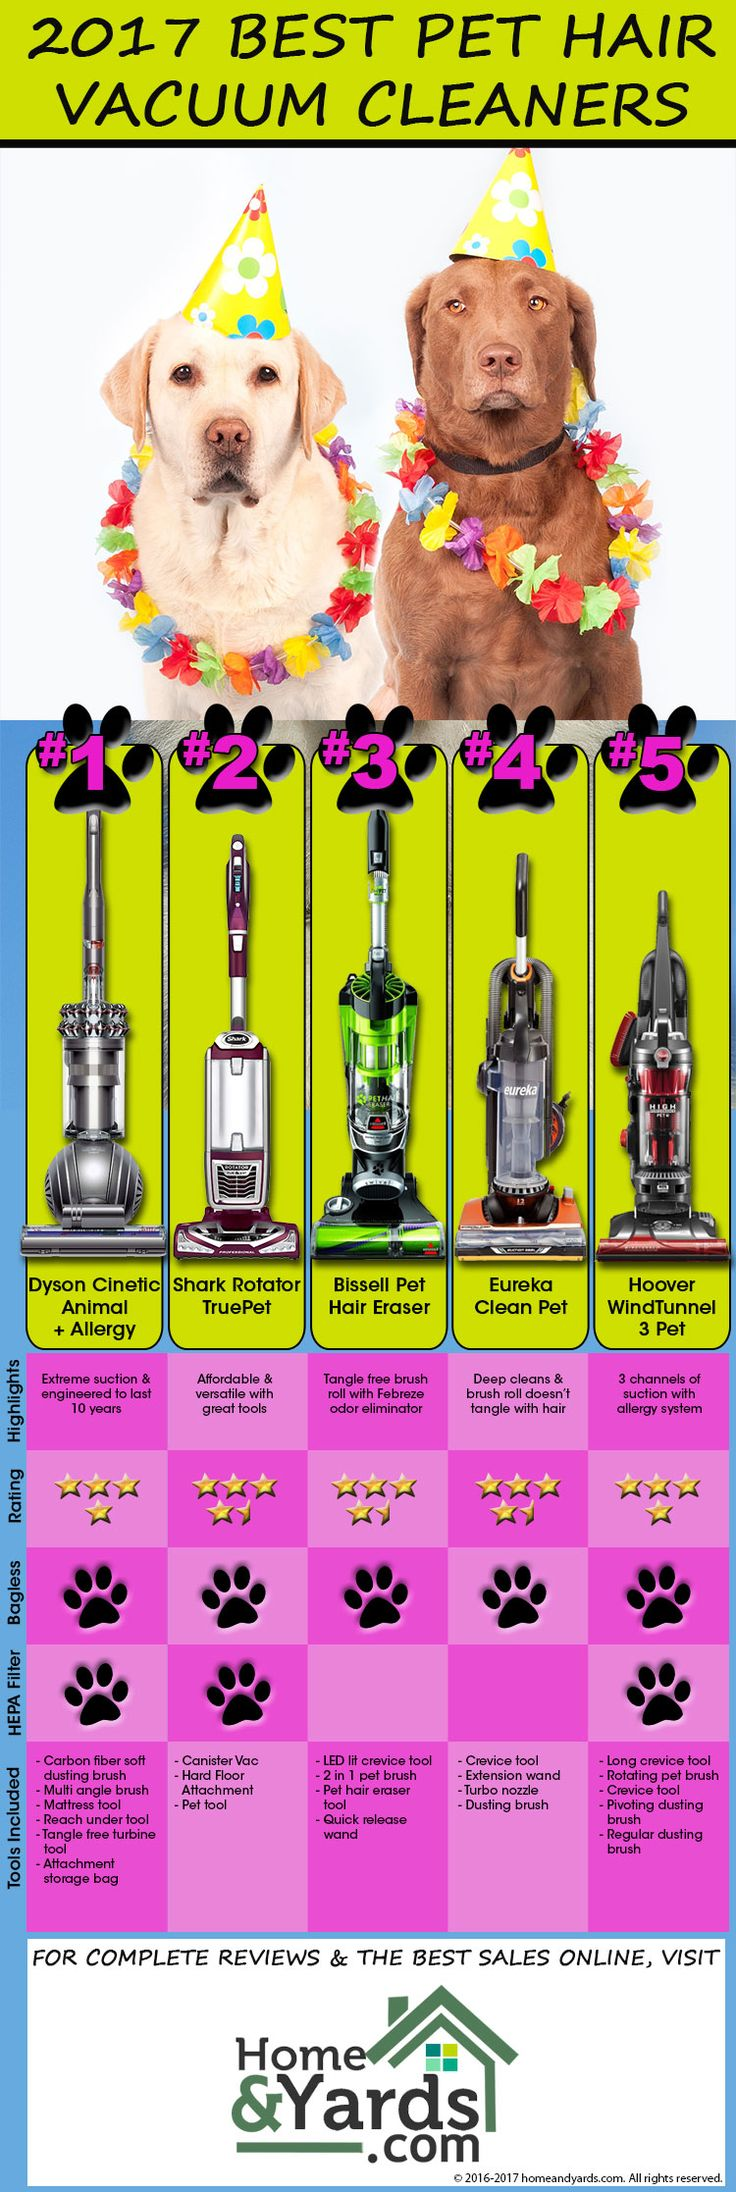 2017 Best Vacuum Cleaners for Pet Hair Infographic